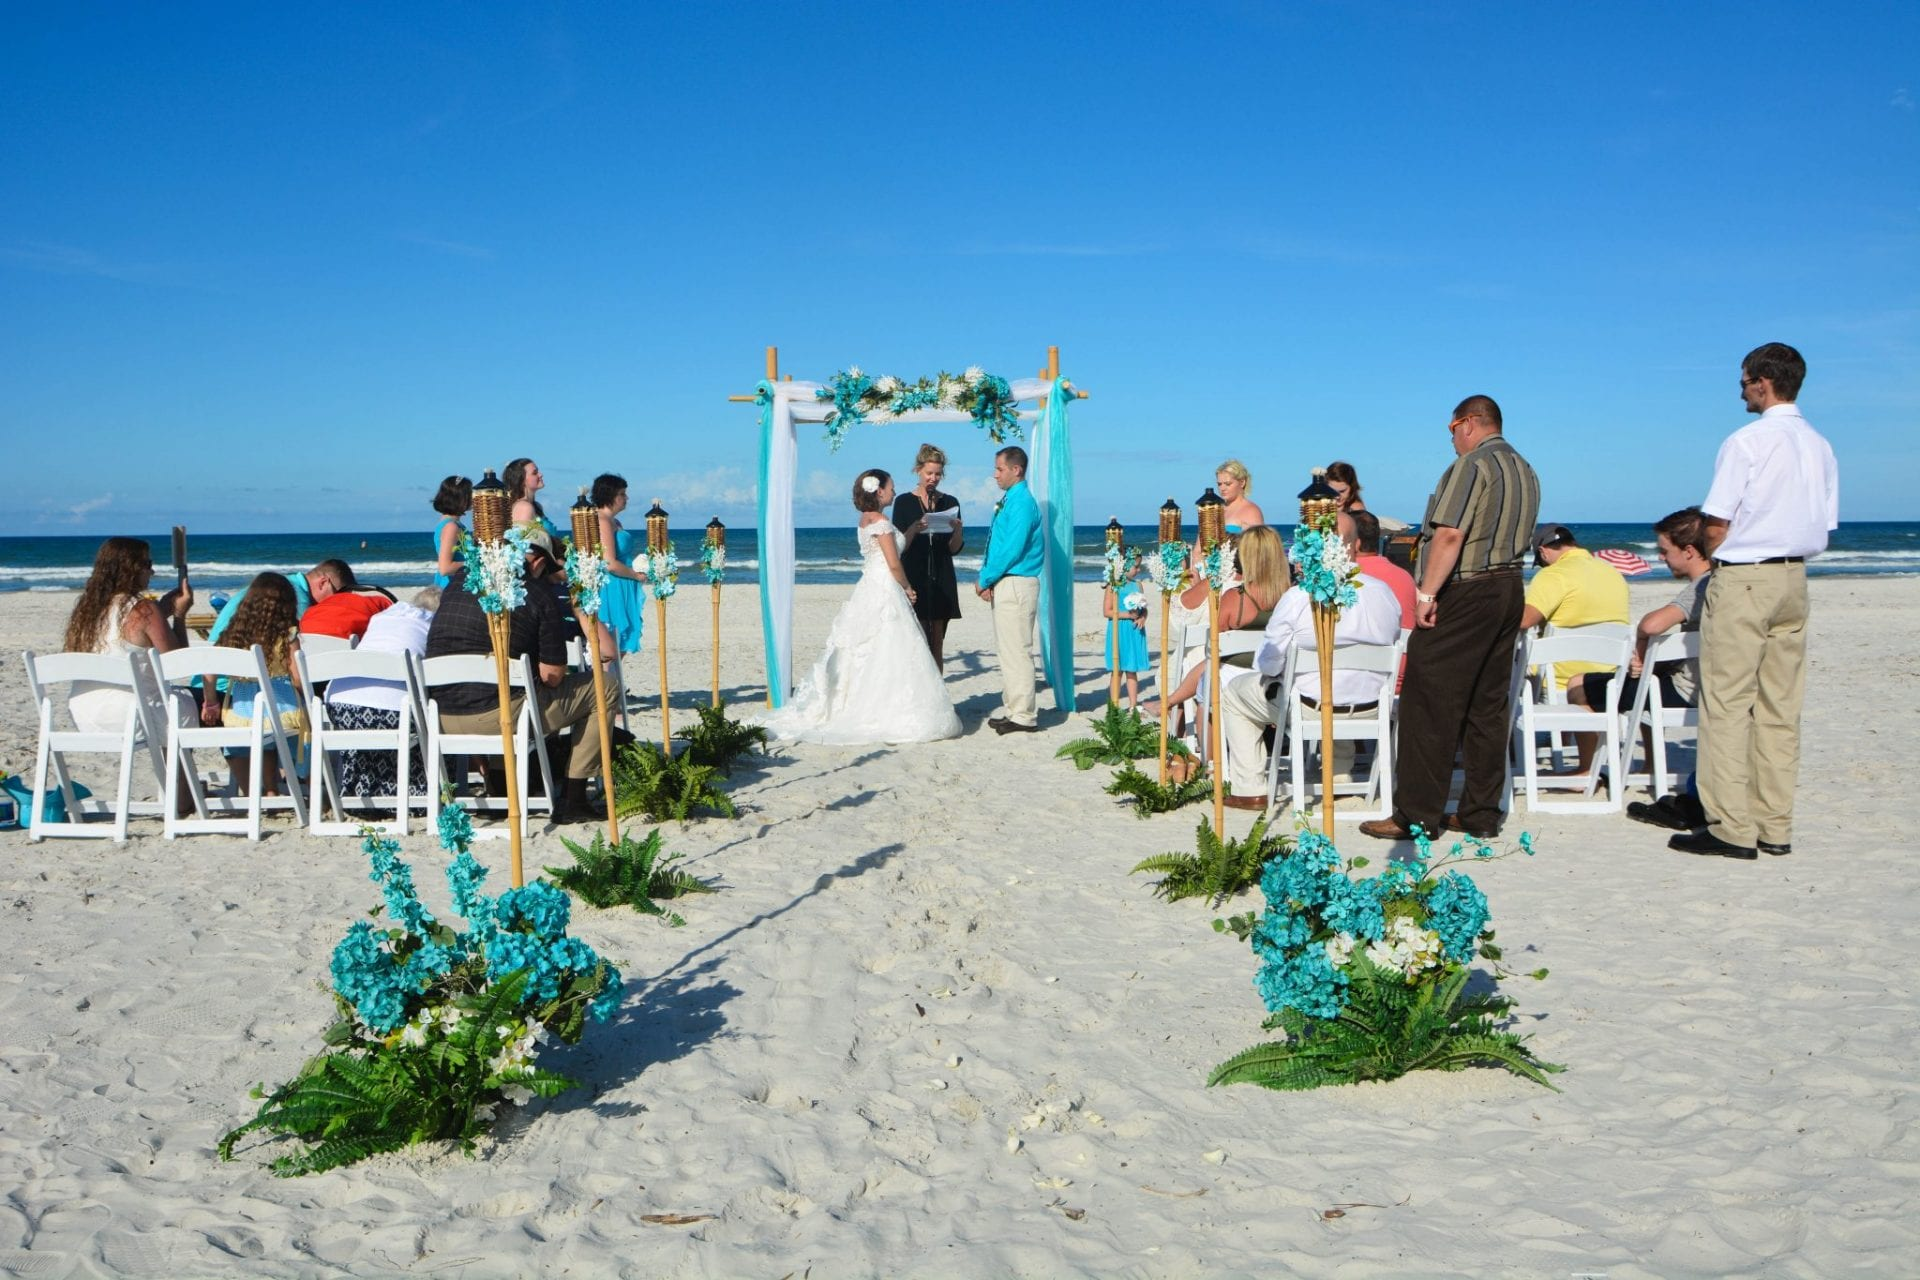 Teal draped bamboo wedding arch on Florida beach with couple saying vows